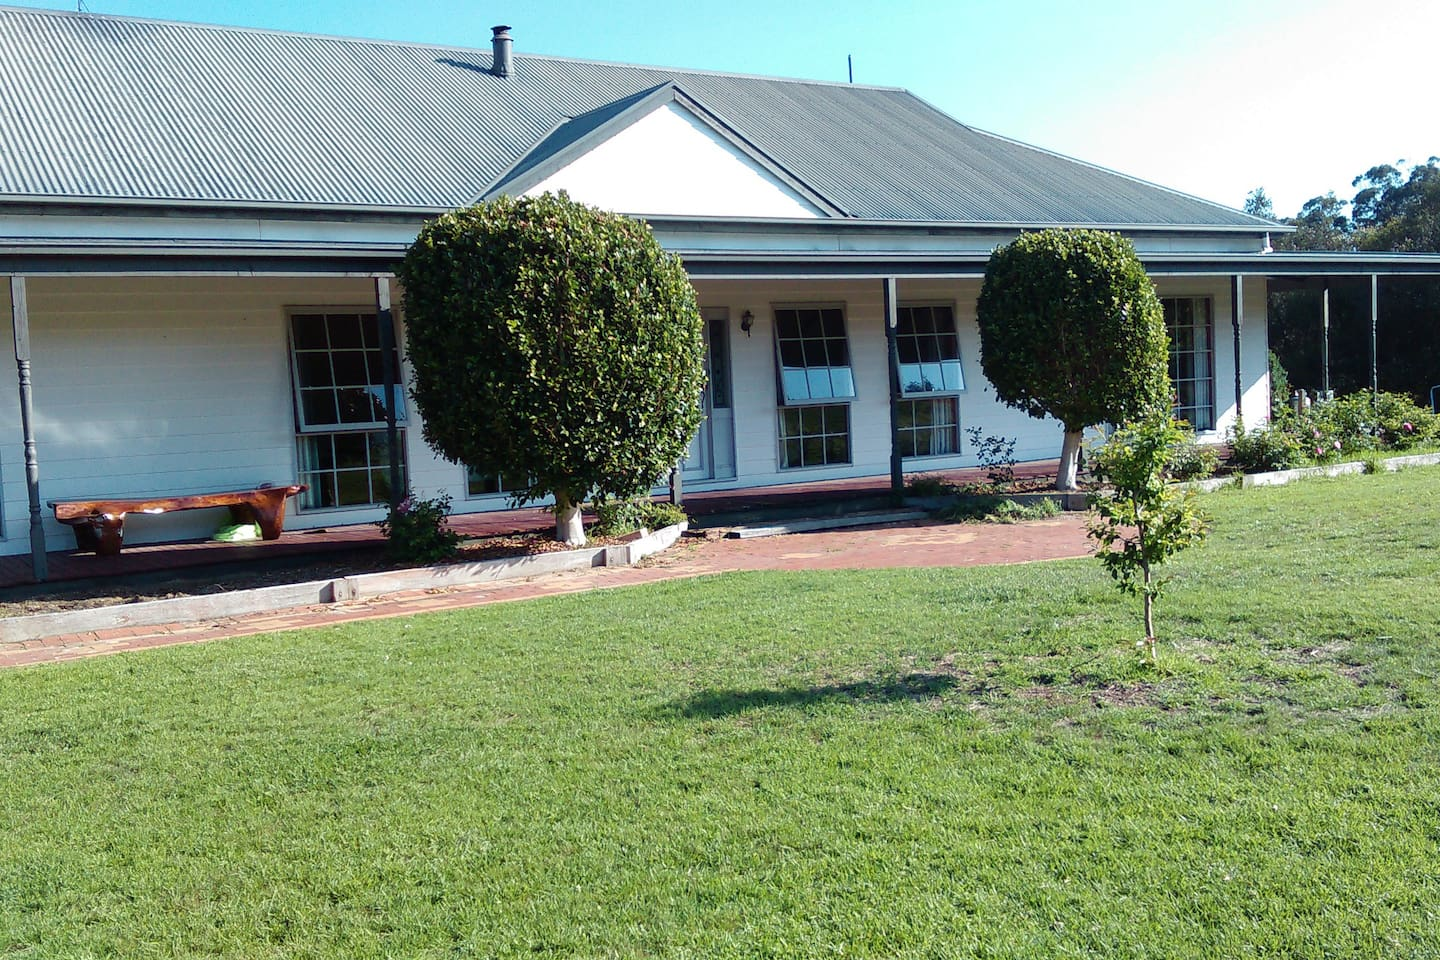 Beautiful home set on Great Alpine Road, across the road from State Park for riding, close to Lakes Entrance, Mitchell River, Easy drive to the snow, fishing, hunting. Secure Parking for bikes boats floats